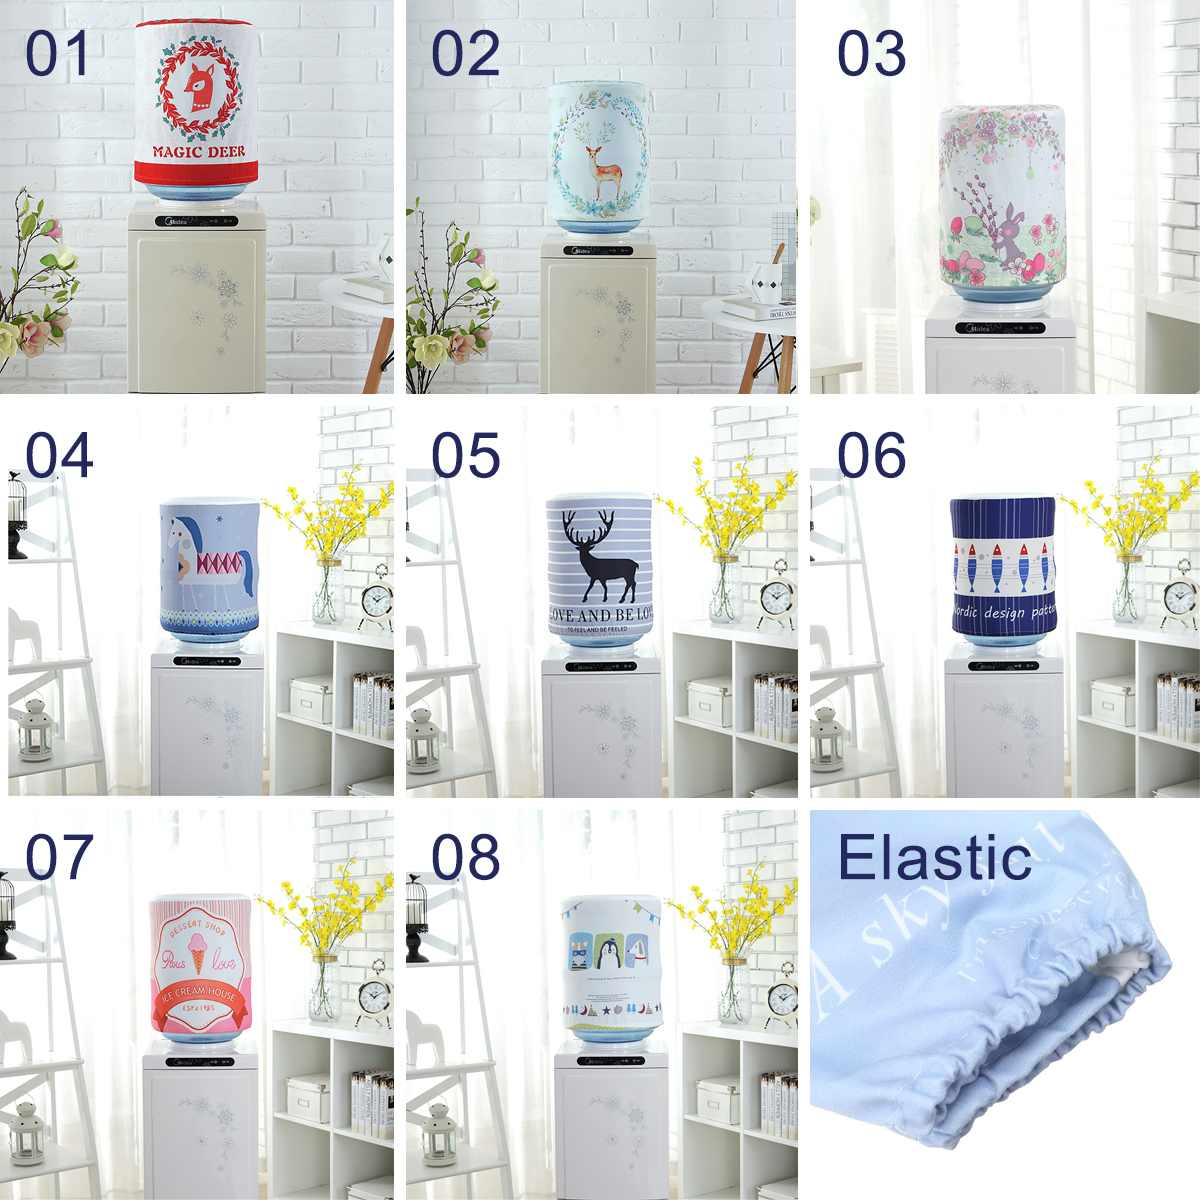 Dust Cover Water Bucket Dispenser Container Bottle Purifier protecter cloth Home Decoration Cute Buskets Covers Reusable